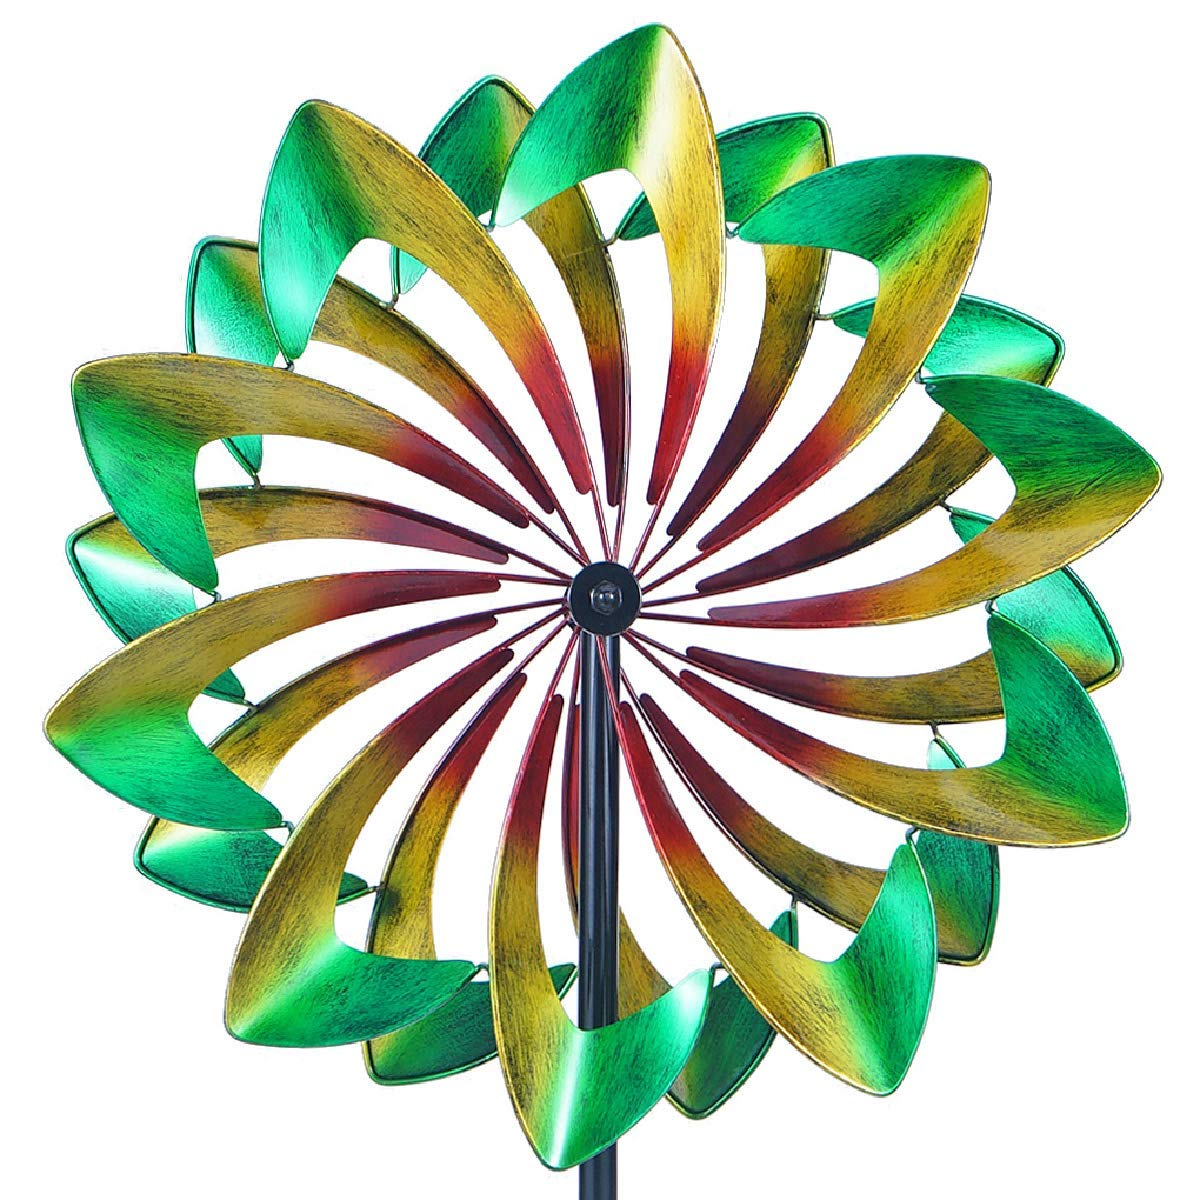 WinWindSpinner WWS-011 Win Way Giant 24 Inch Diameter Wind Spinner-Multicolor, WWS-011-Multi